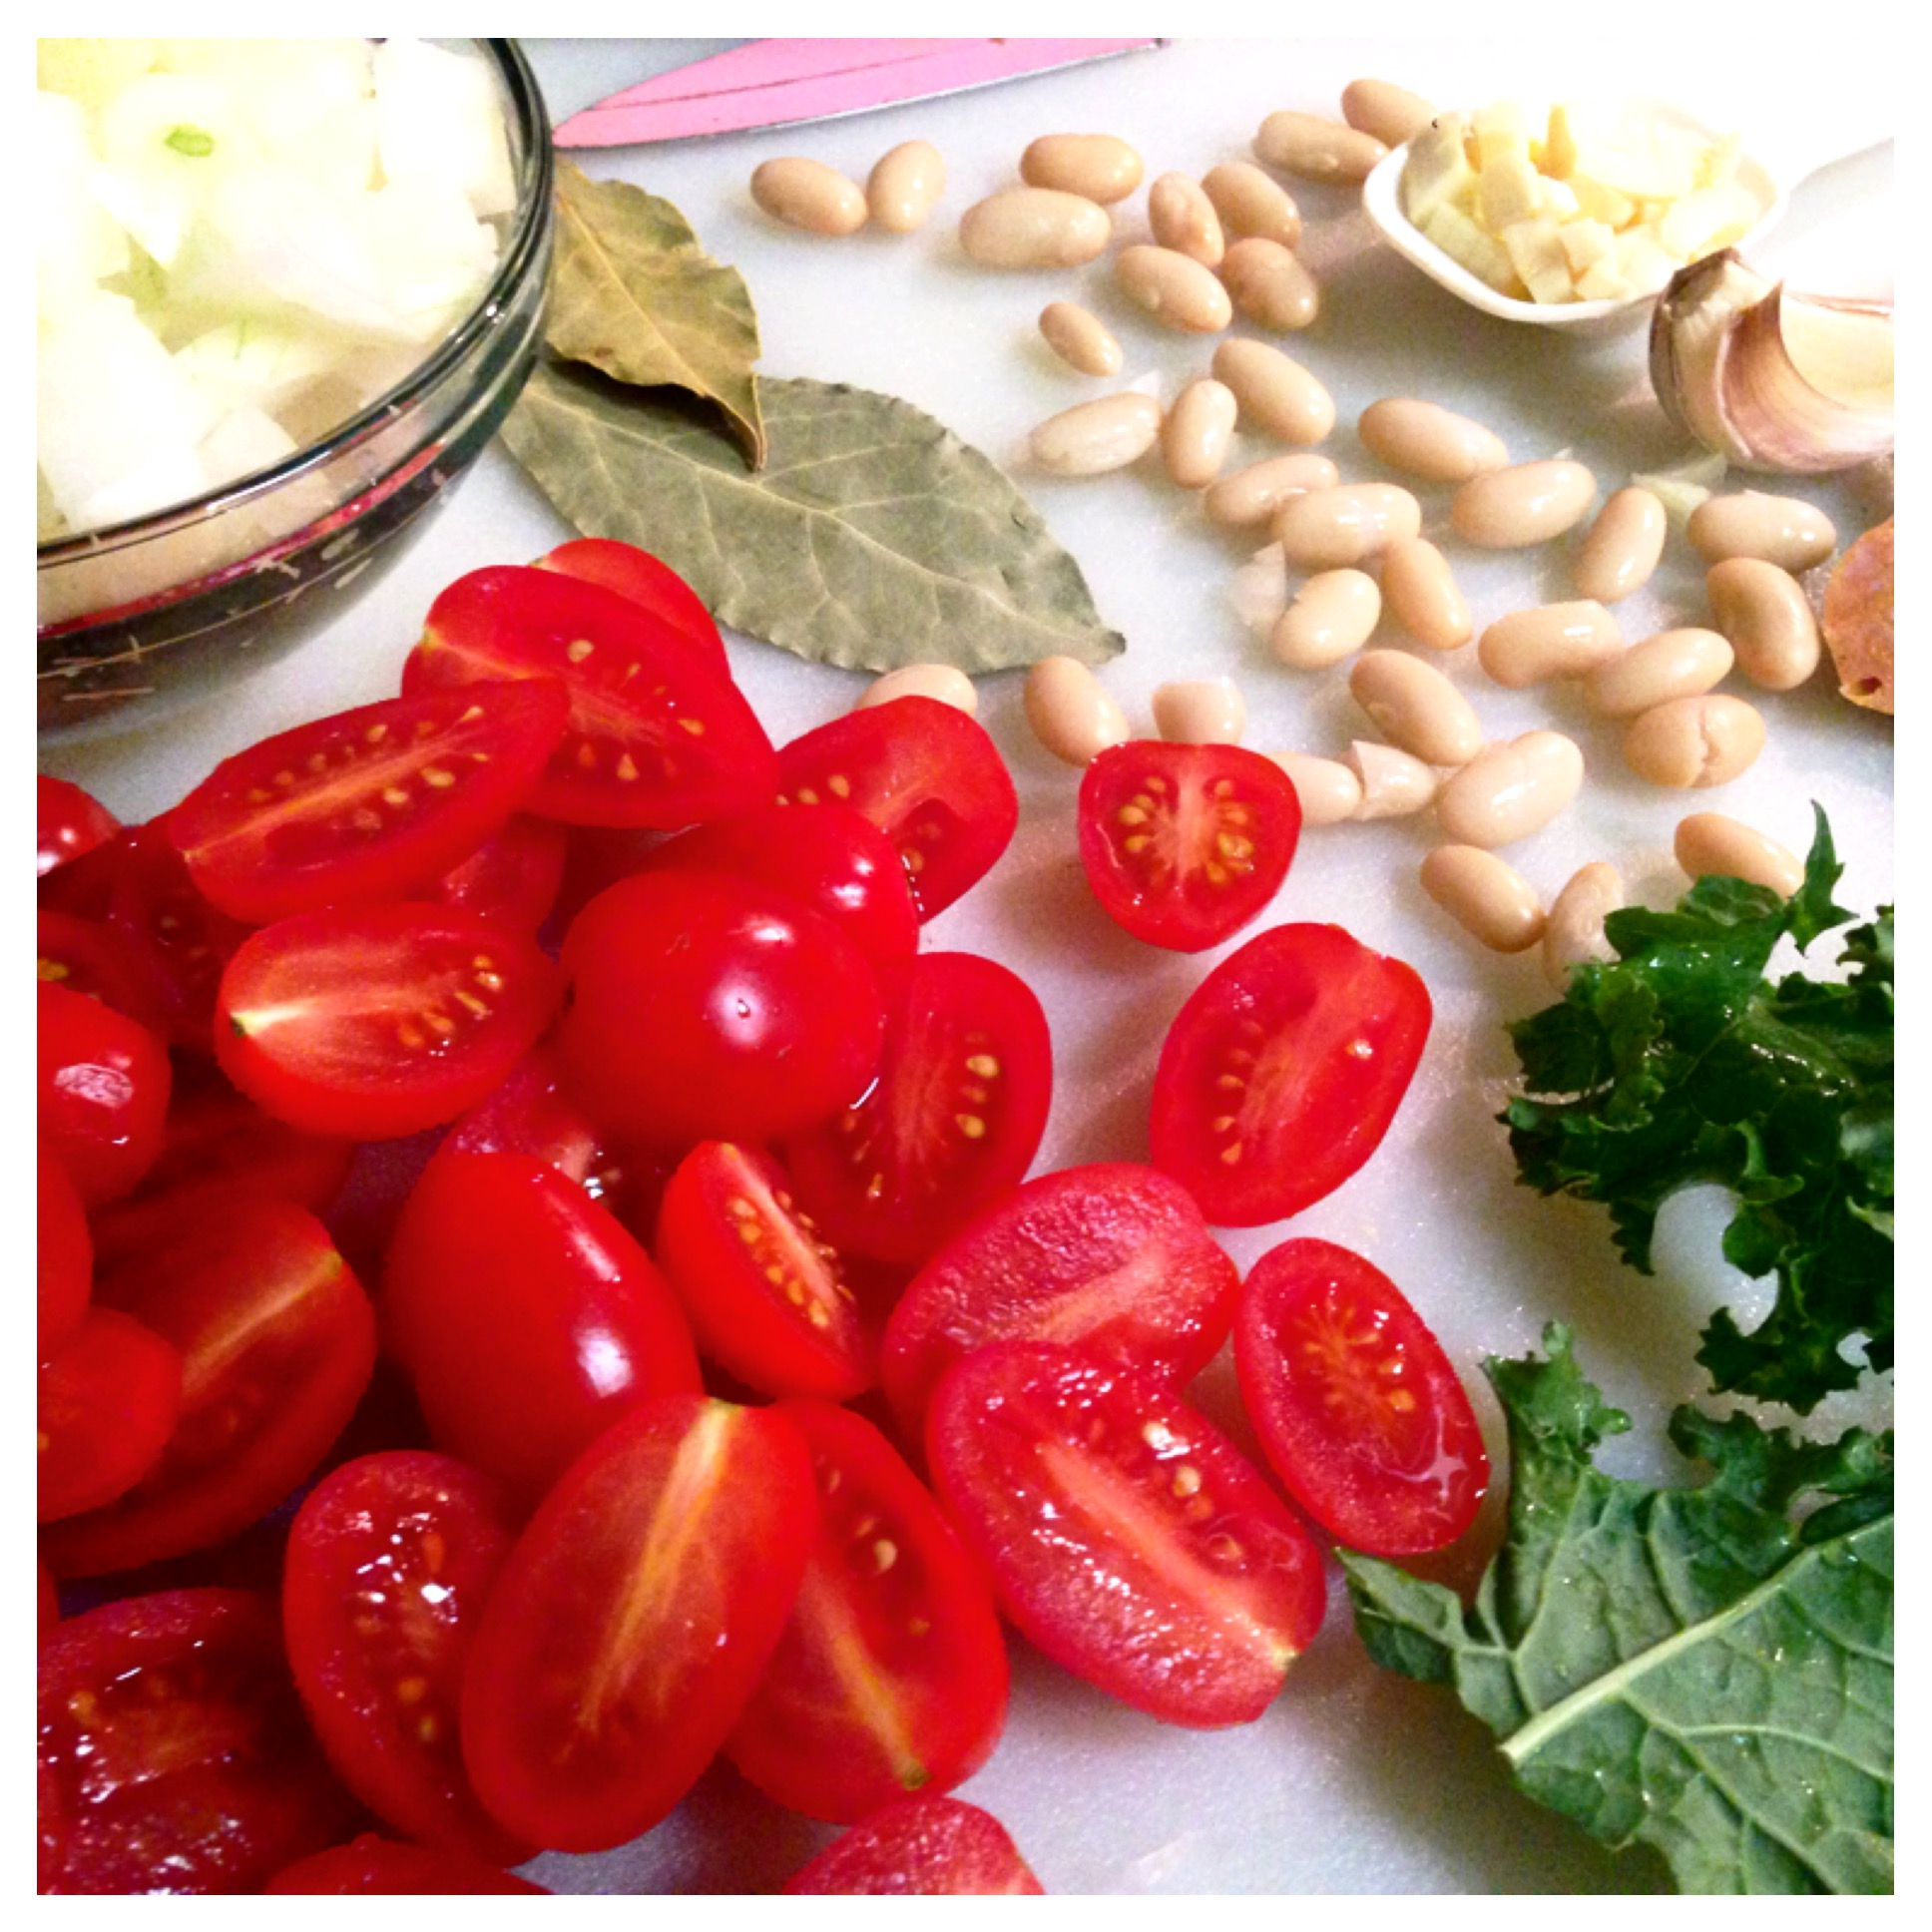 Tomatoes kale, beans onion.JPG